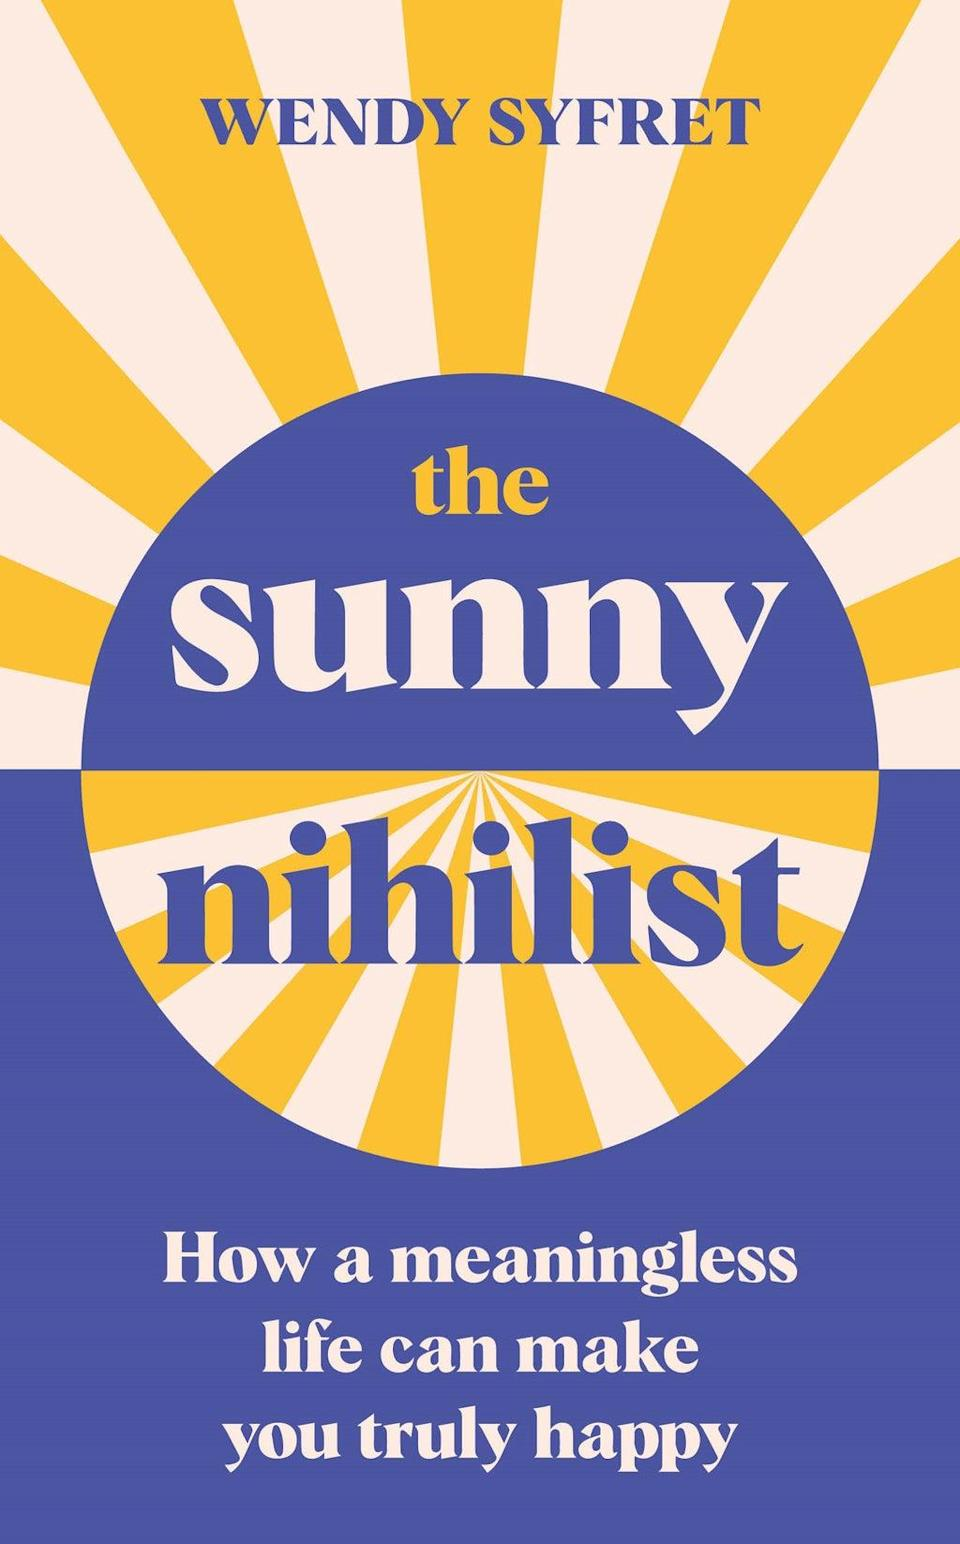 (The Sunny Nihilist by Wendy Syfret)